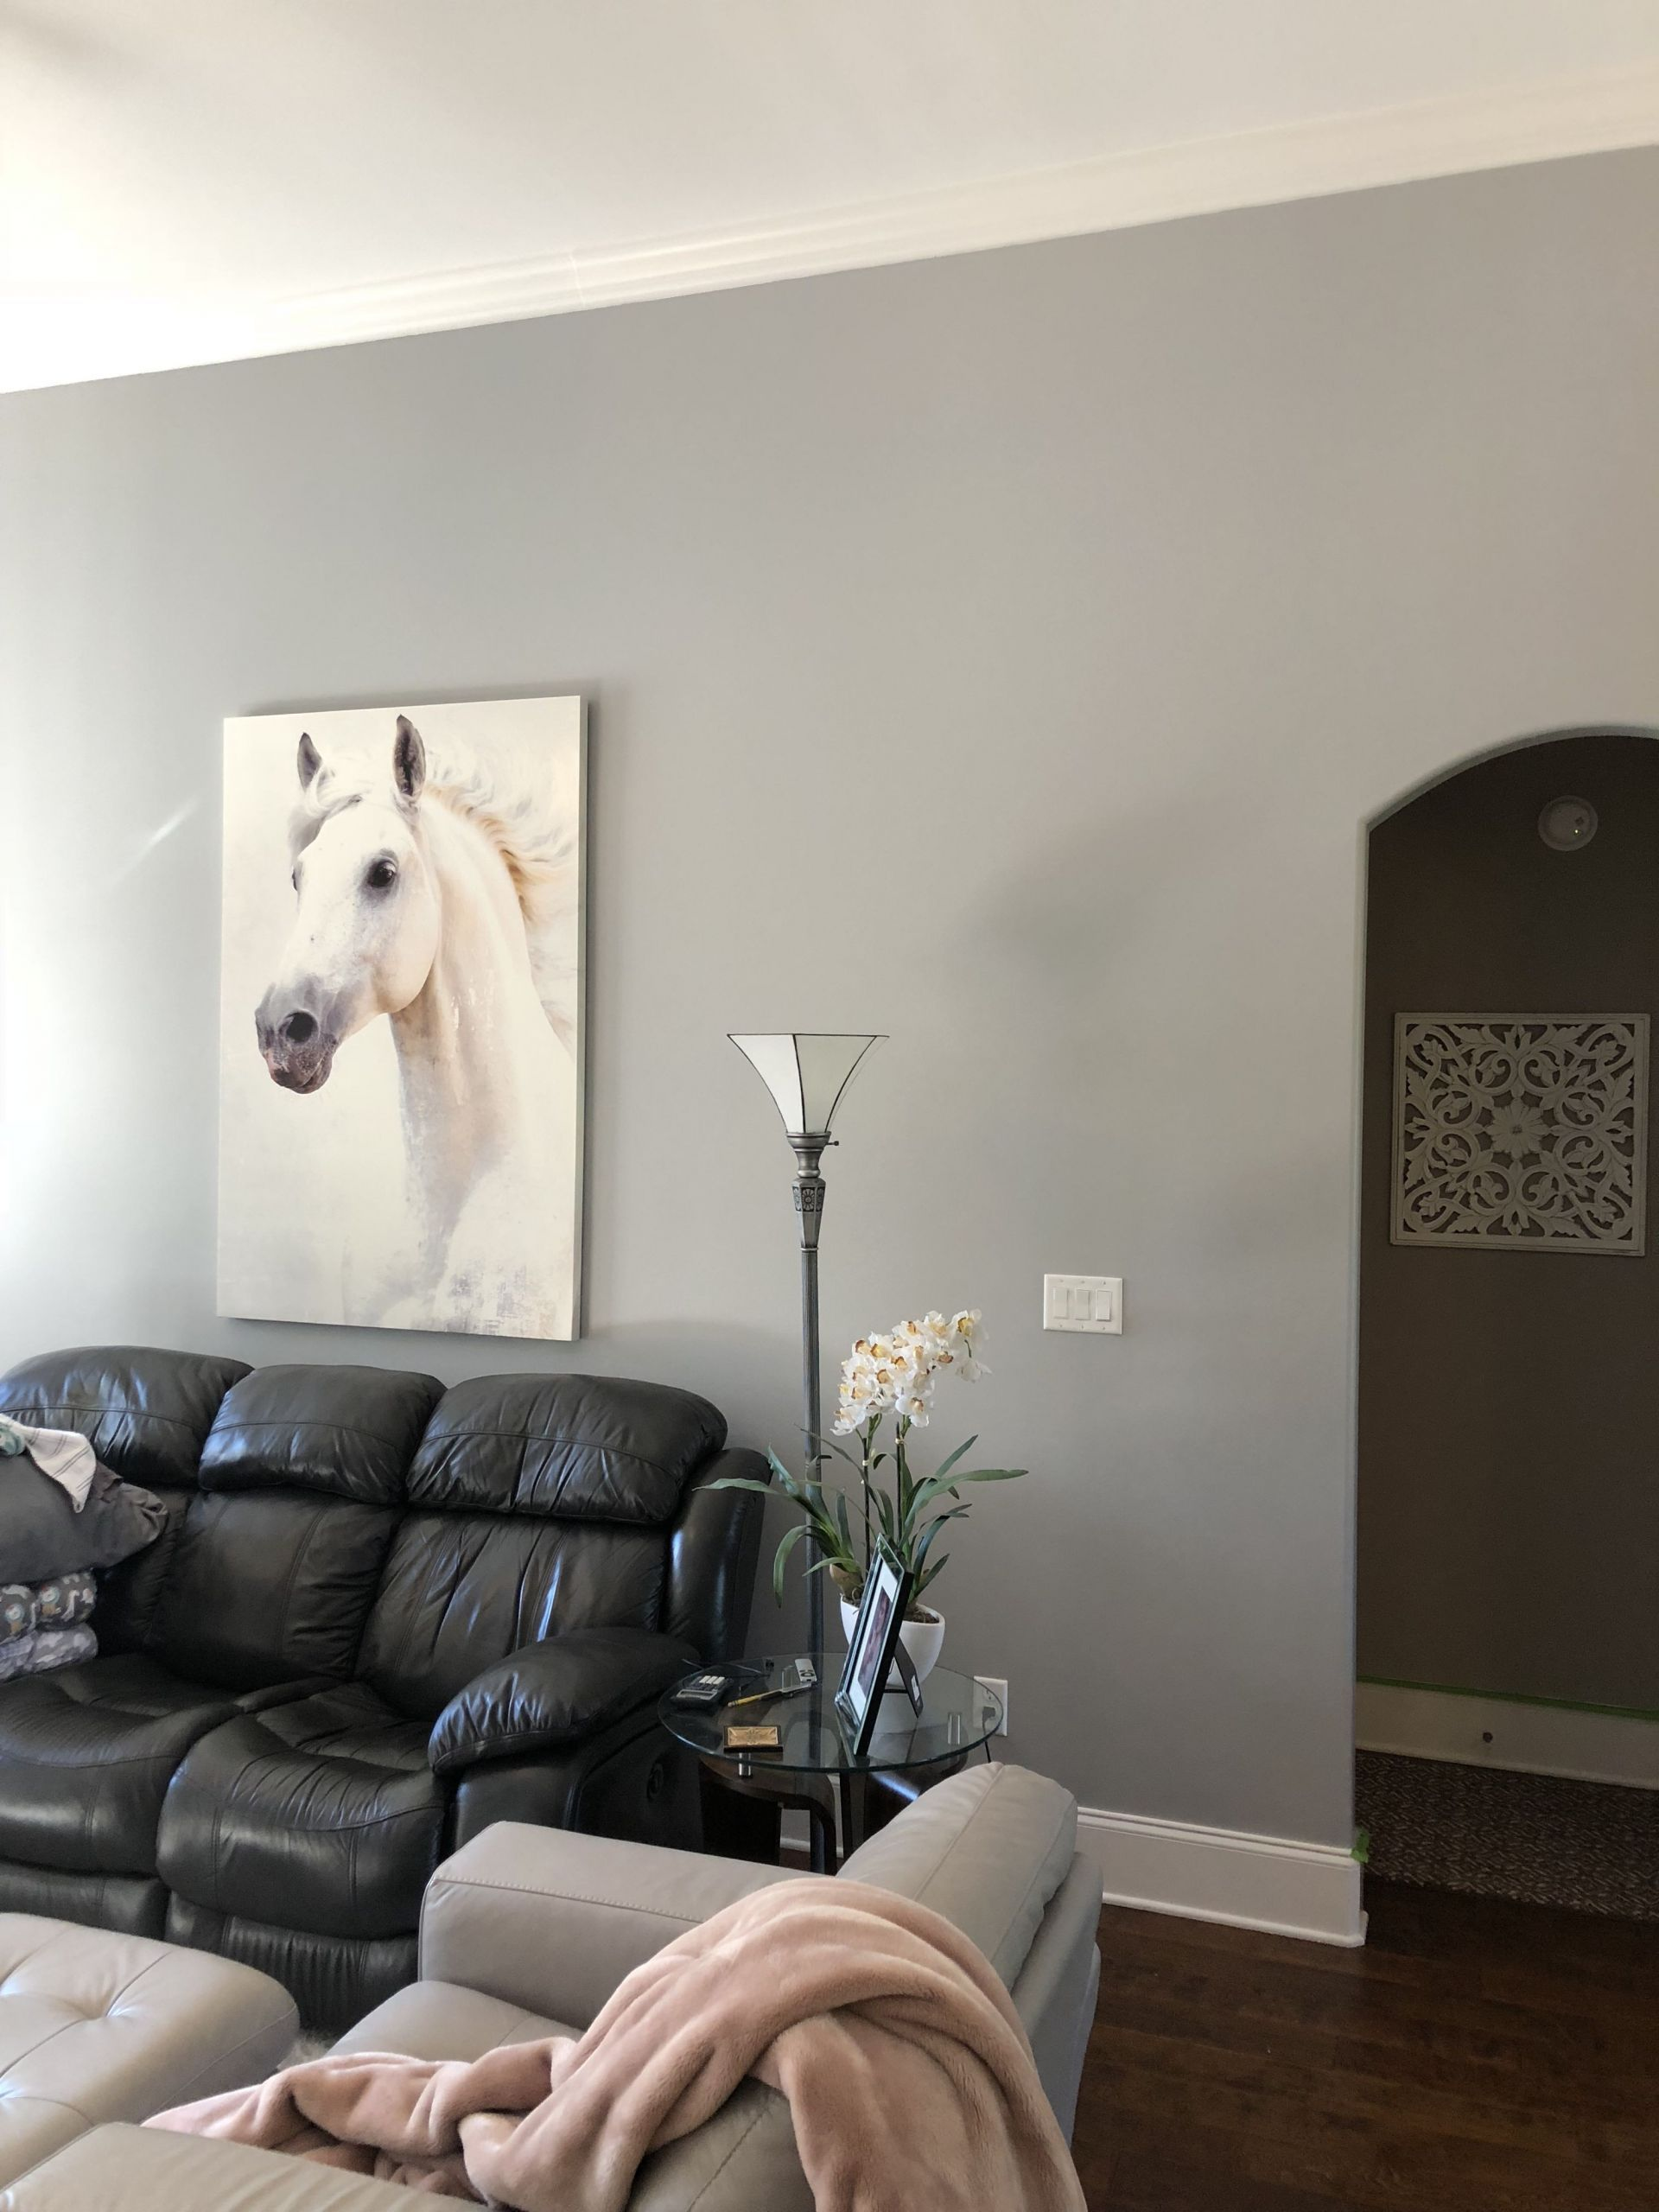 Best Of Sherwin Williams Peel and Stick Wallpaper